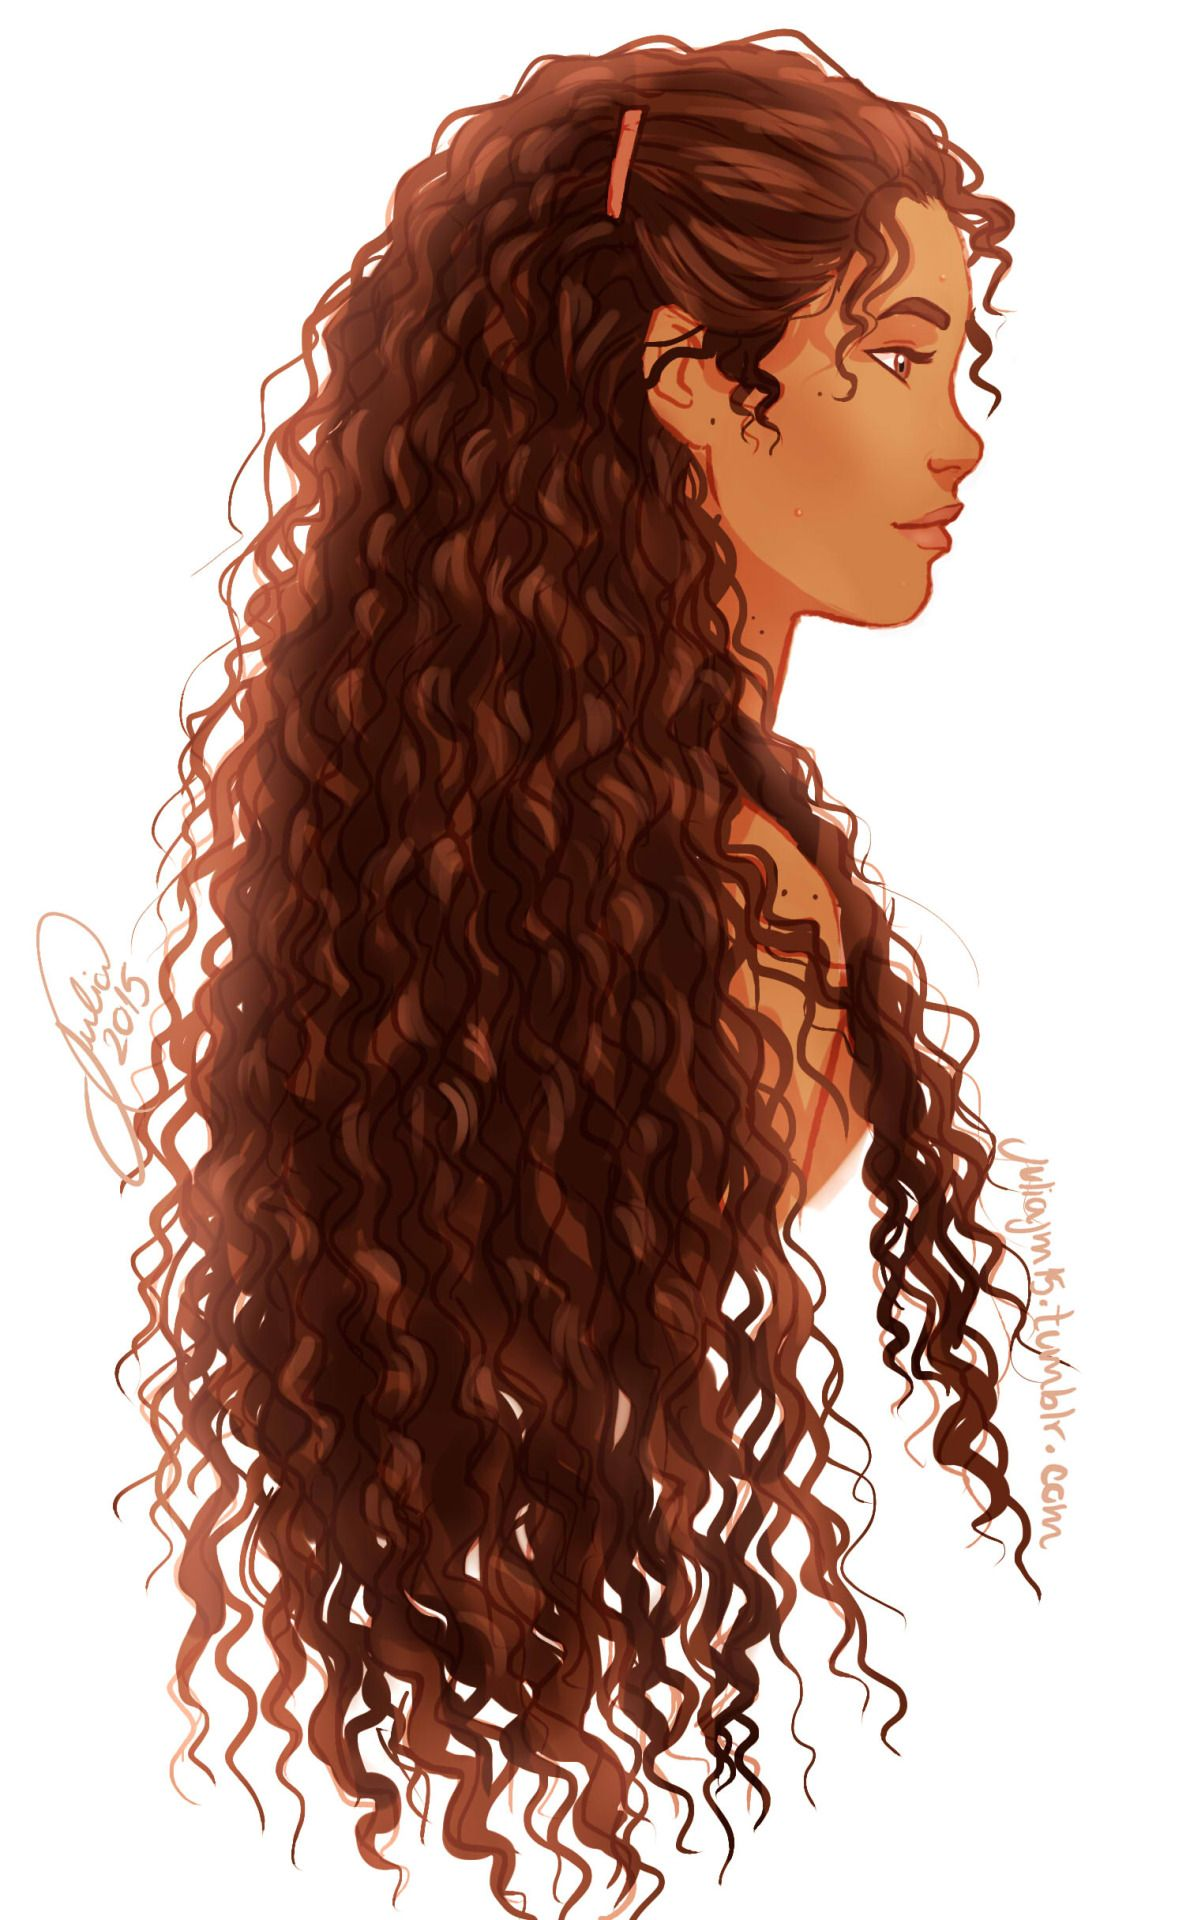 Increase Curly Girl Hairstyles Curly Hair Styles Curly Hair Drawing